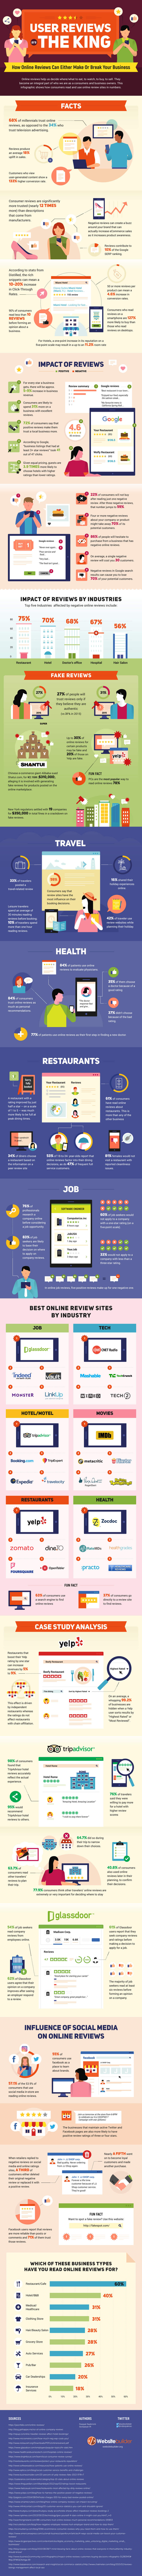 Customer Online Reviews Infographic